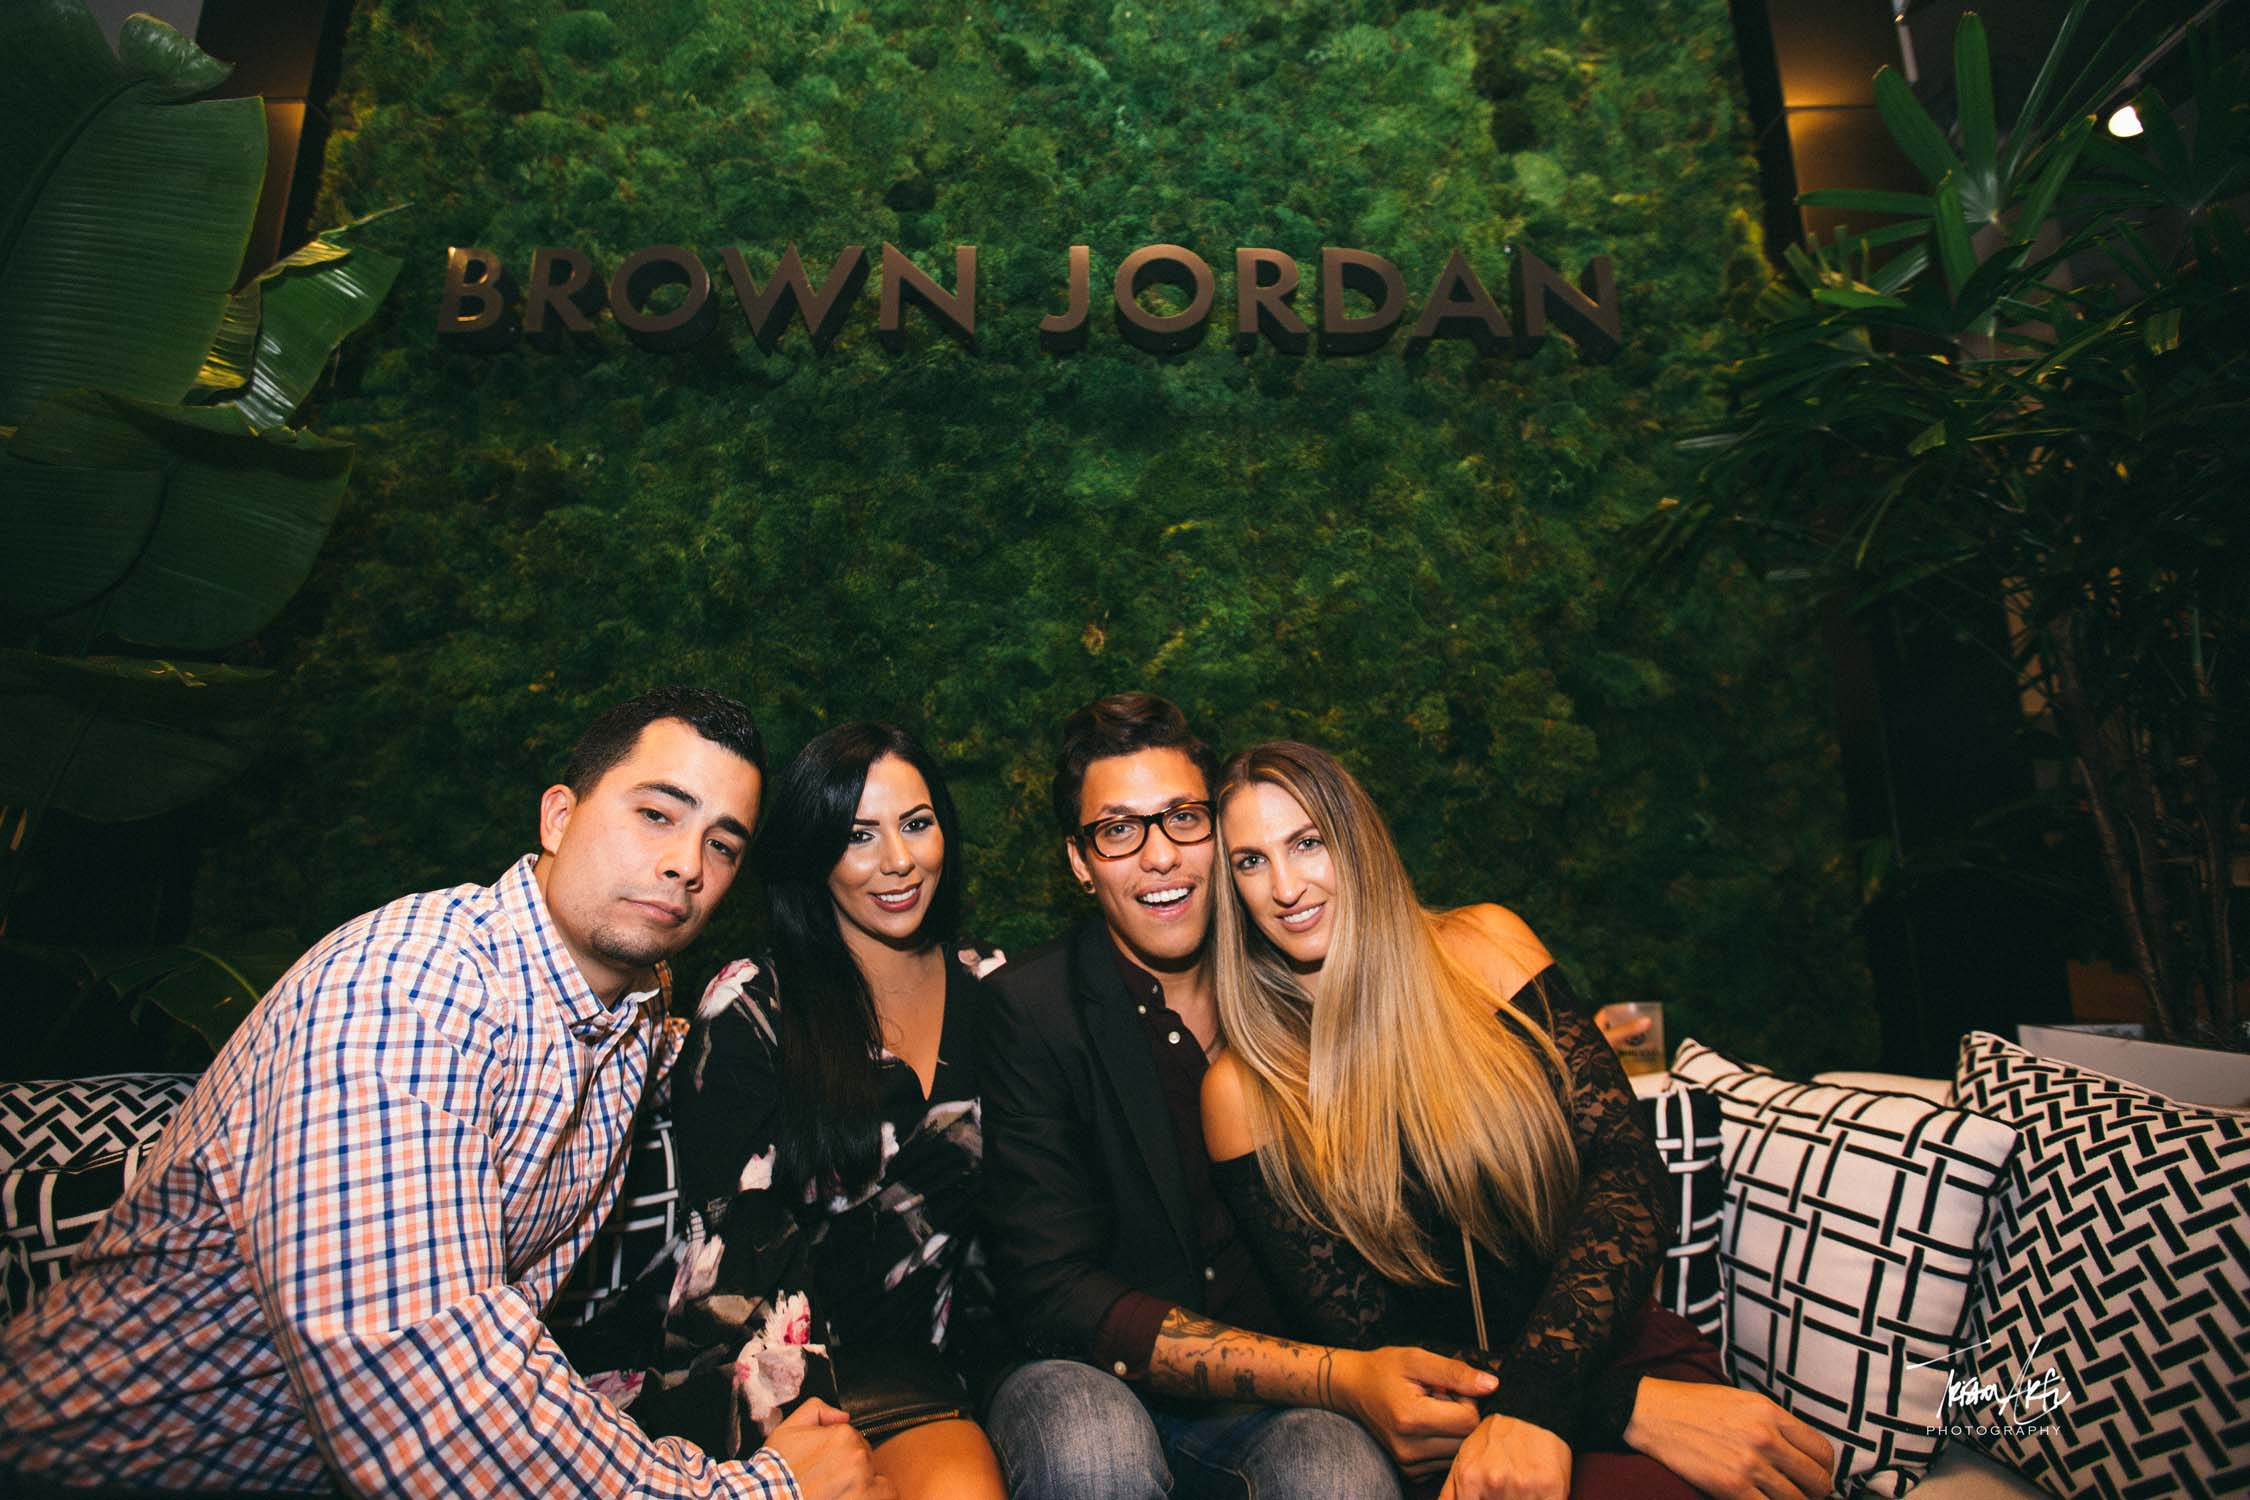 Event BROWN JORDAN-182.JPG